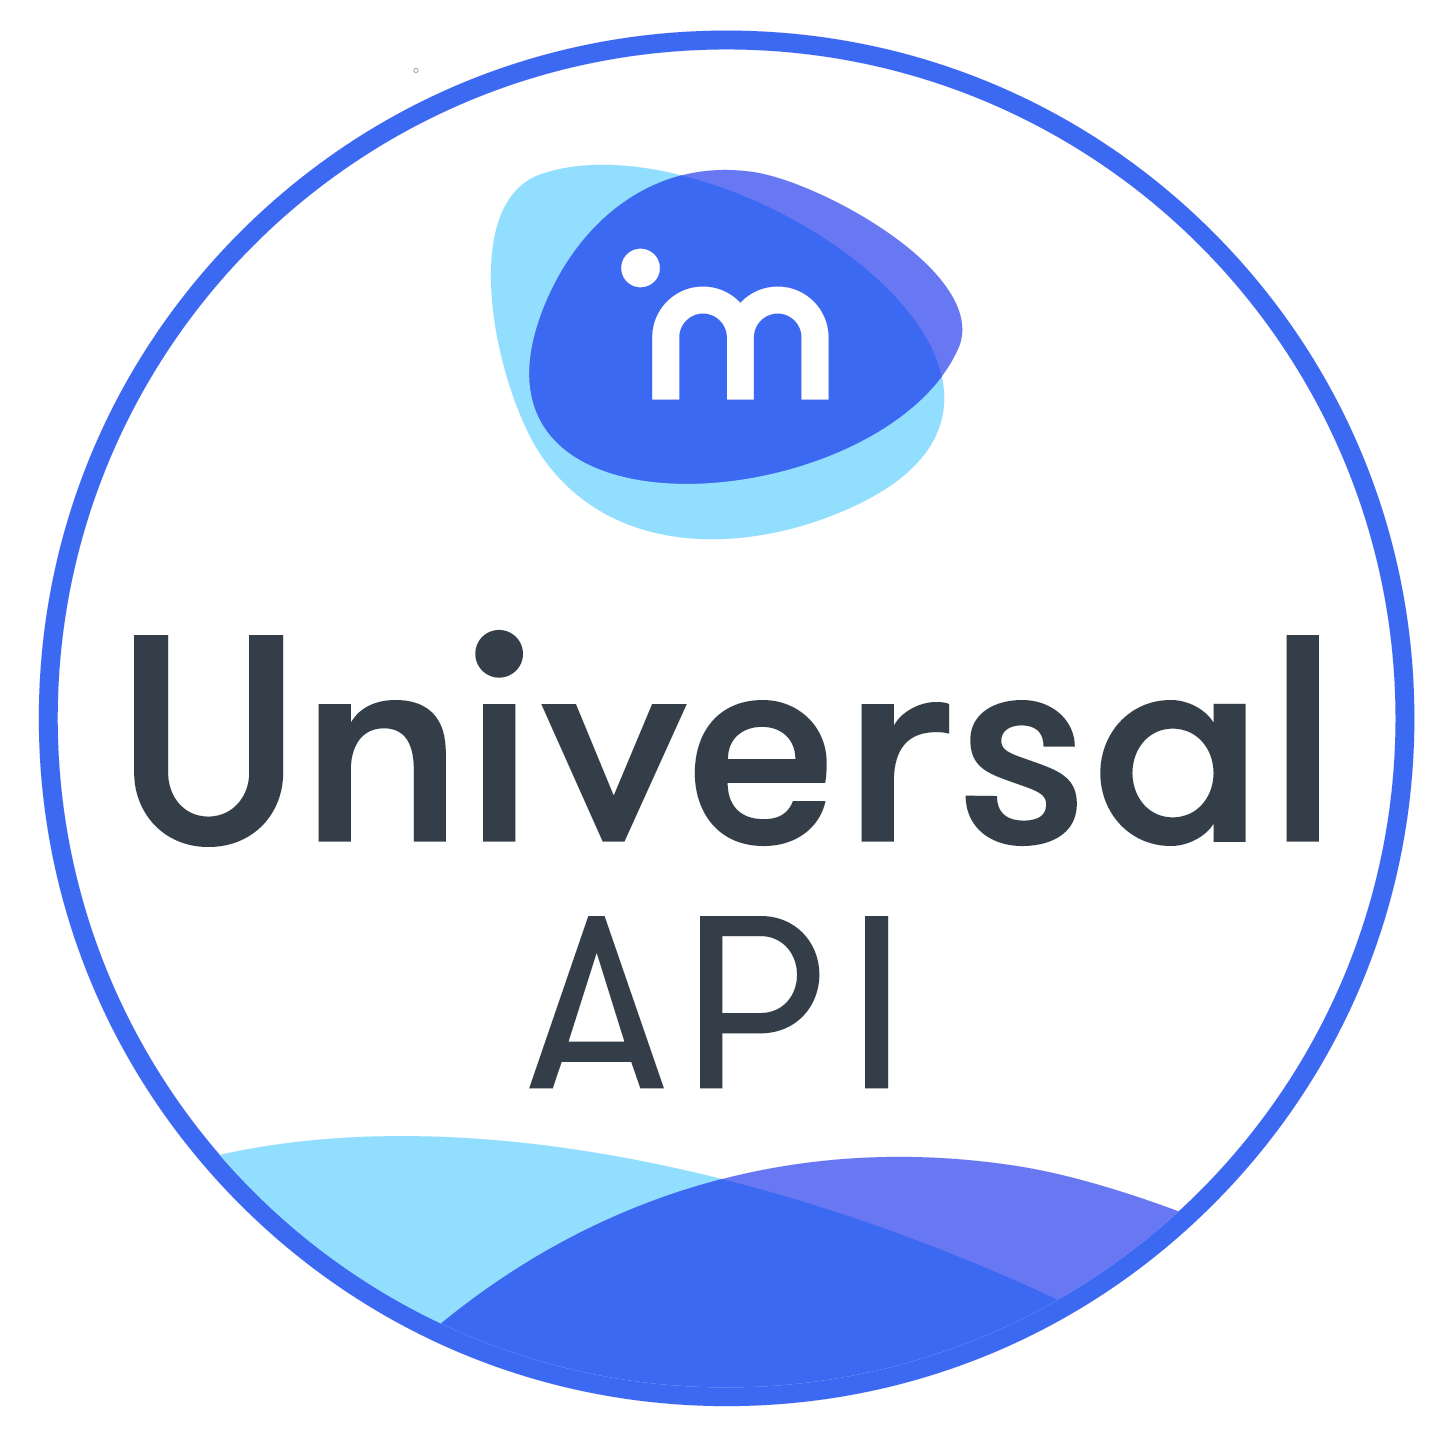 iManage Univeral API Certified